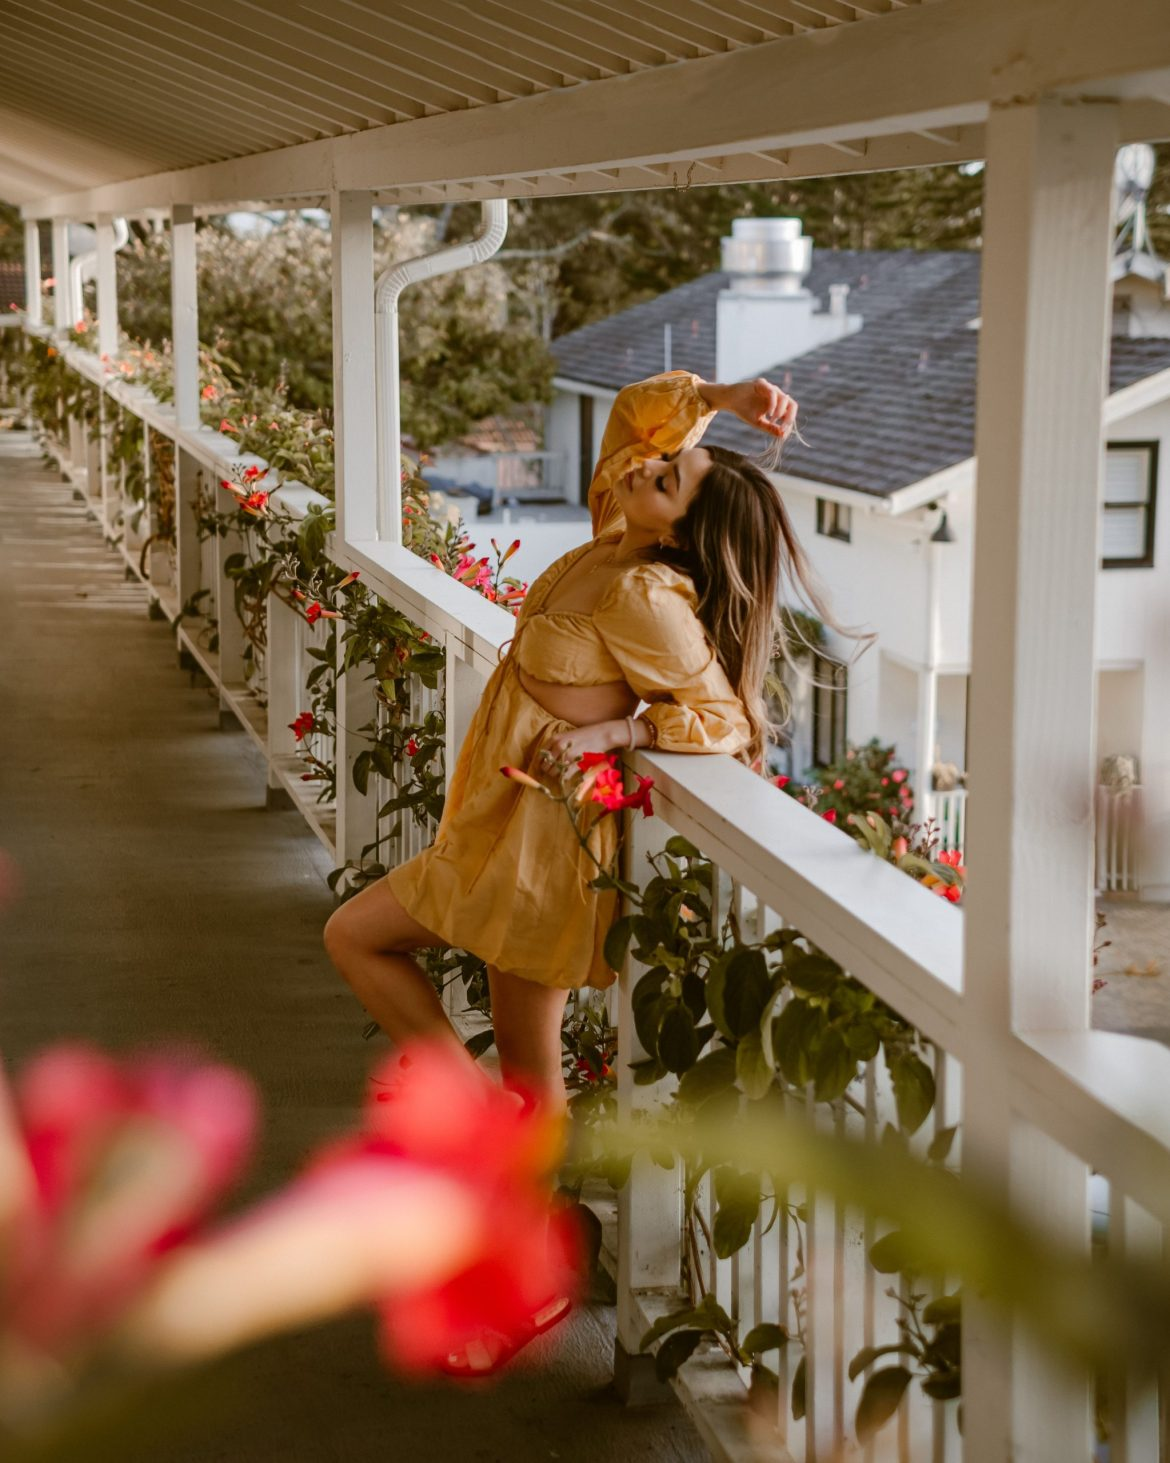 girl photography, creative hotel photoshoot, summer outfit ideas, summer dress, Carmel by the sea, travel destinations